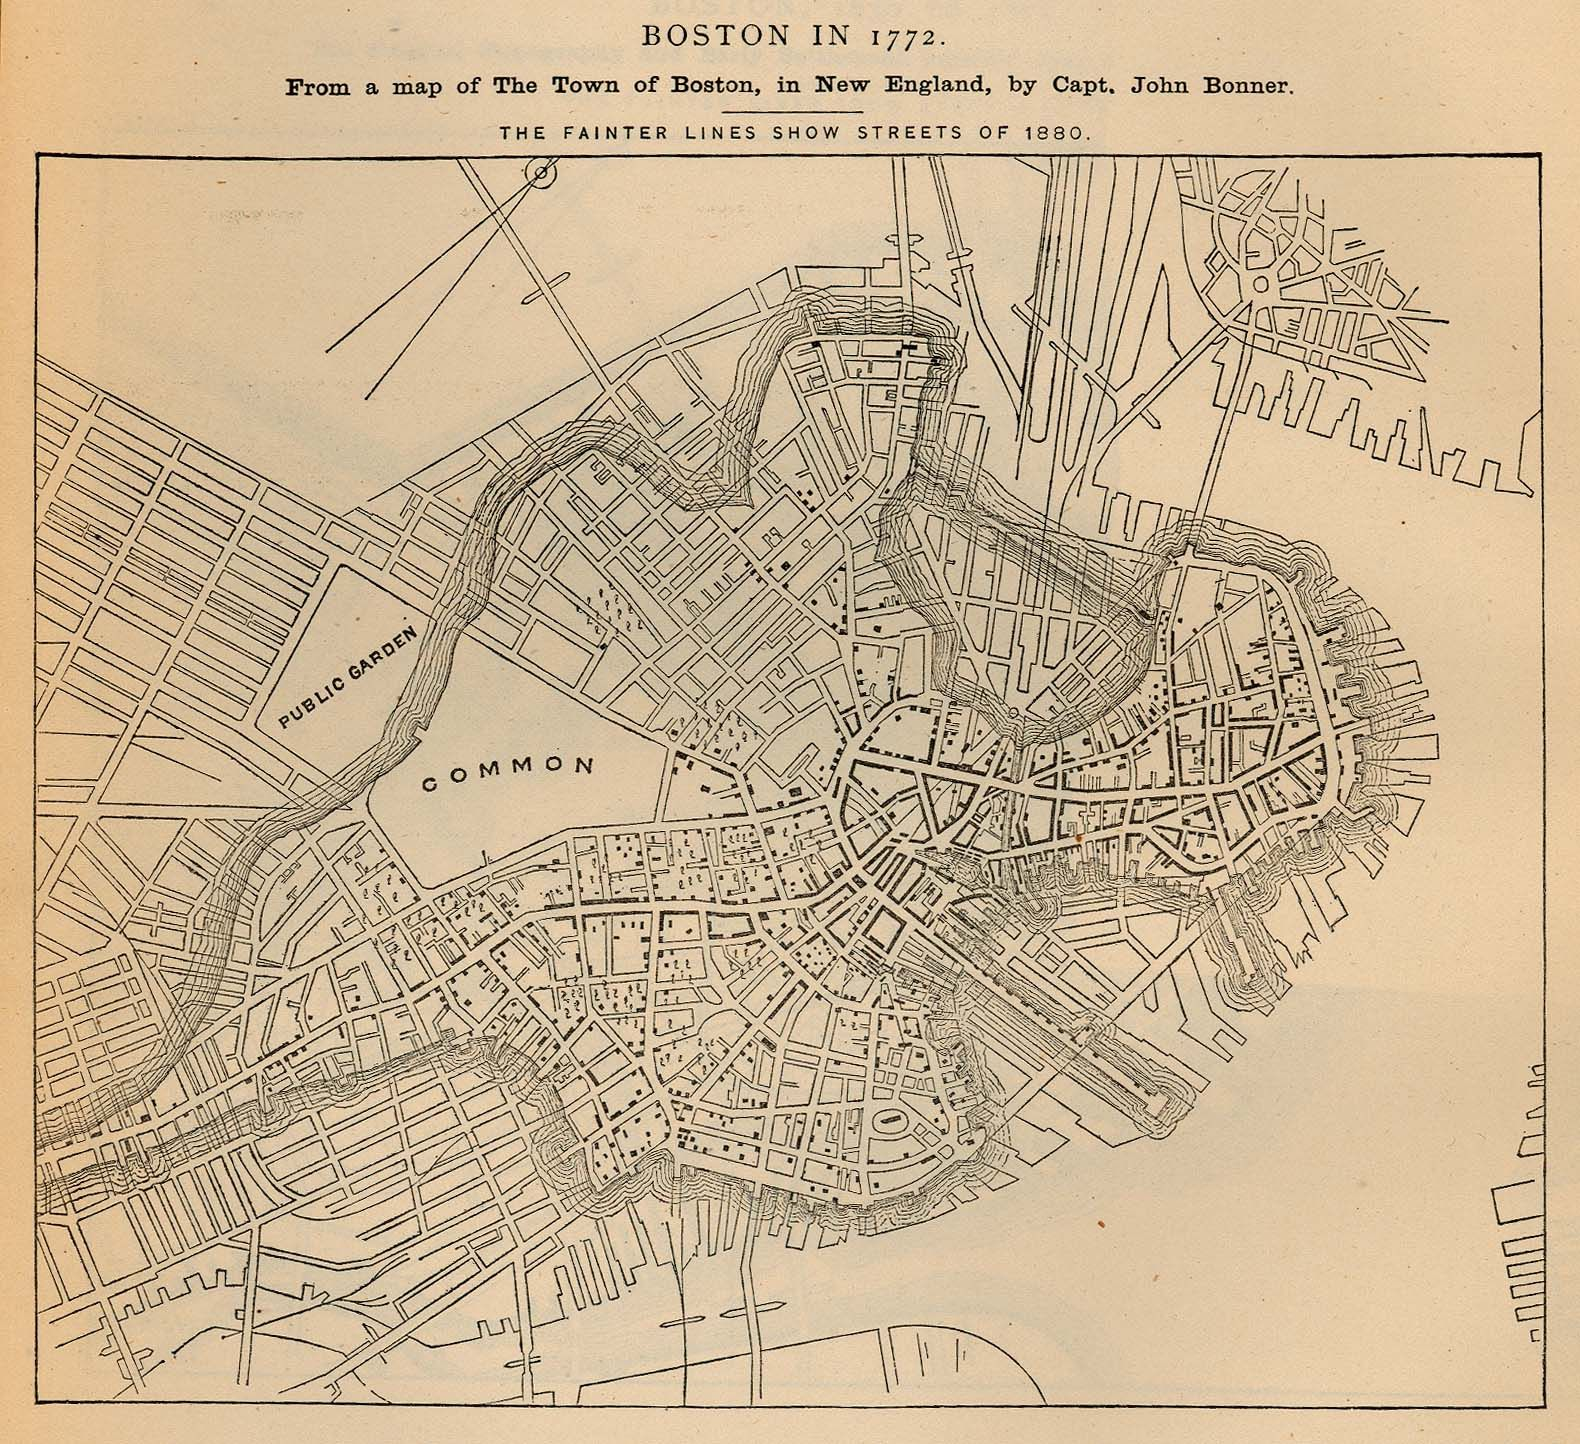 Boston In After Some Land Reclamation DESIGN Maptastic - Boston us map